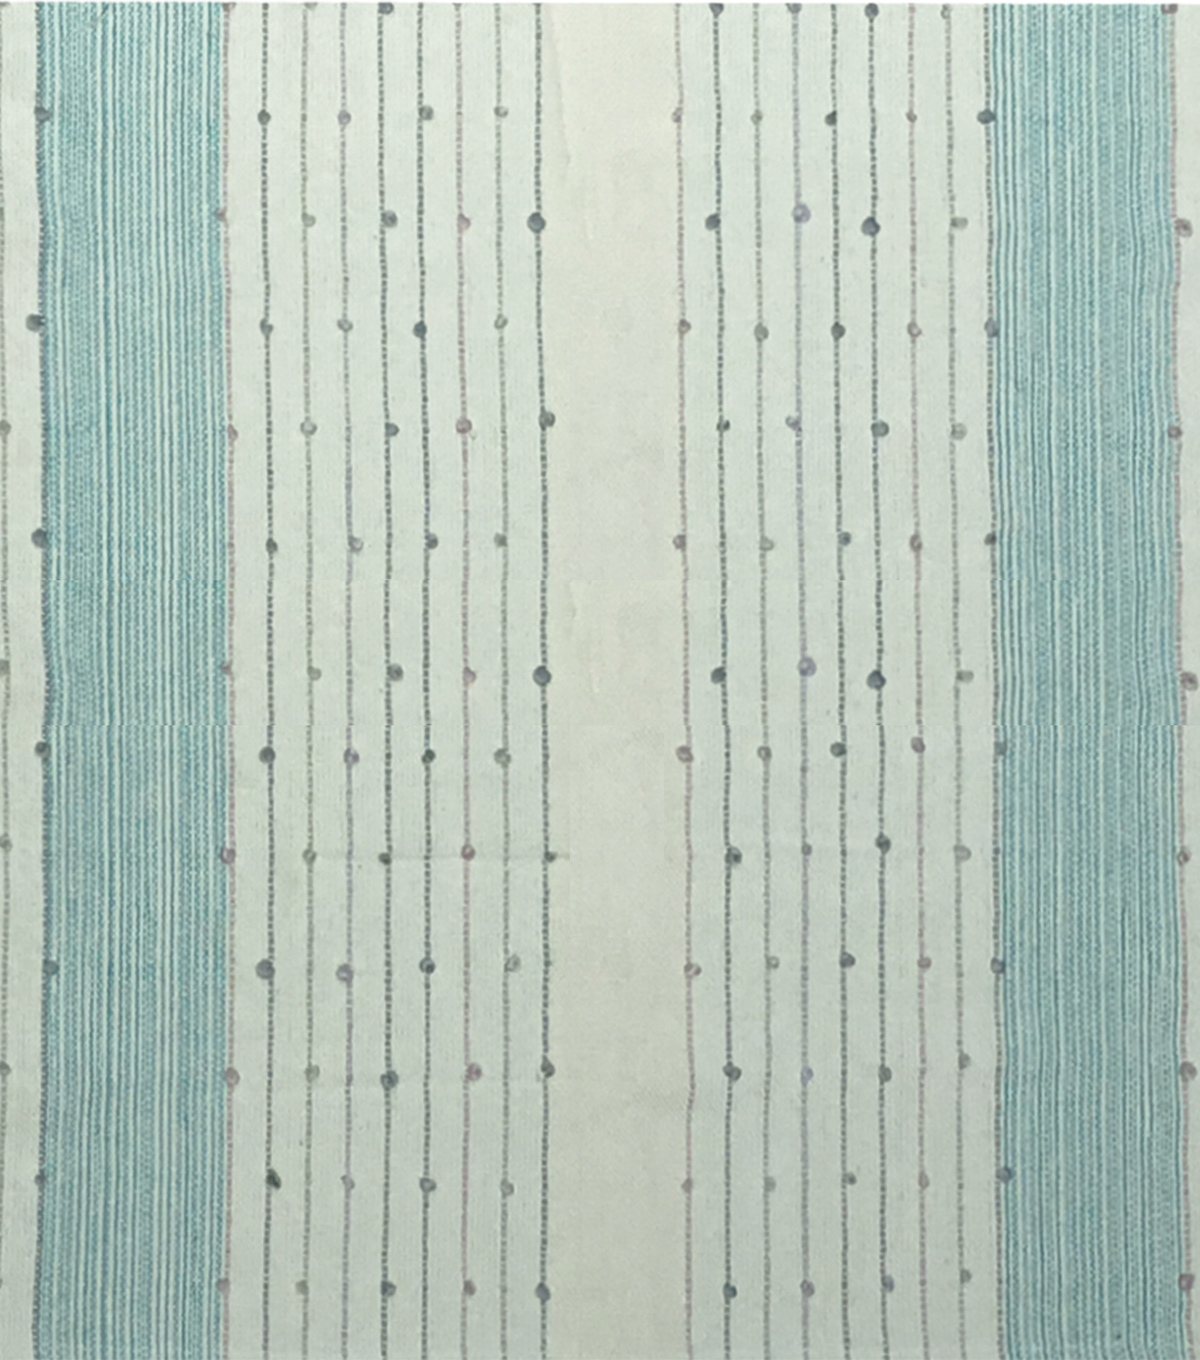 Lightweight Décor Fabric-Aqua 3D Dots